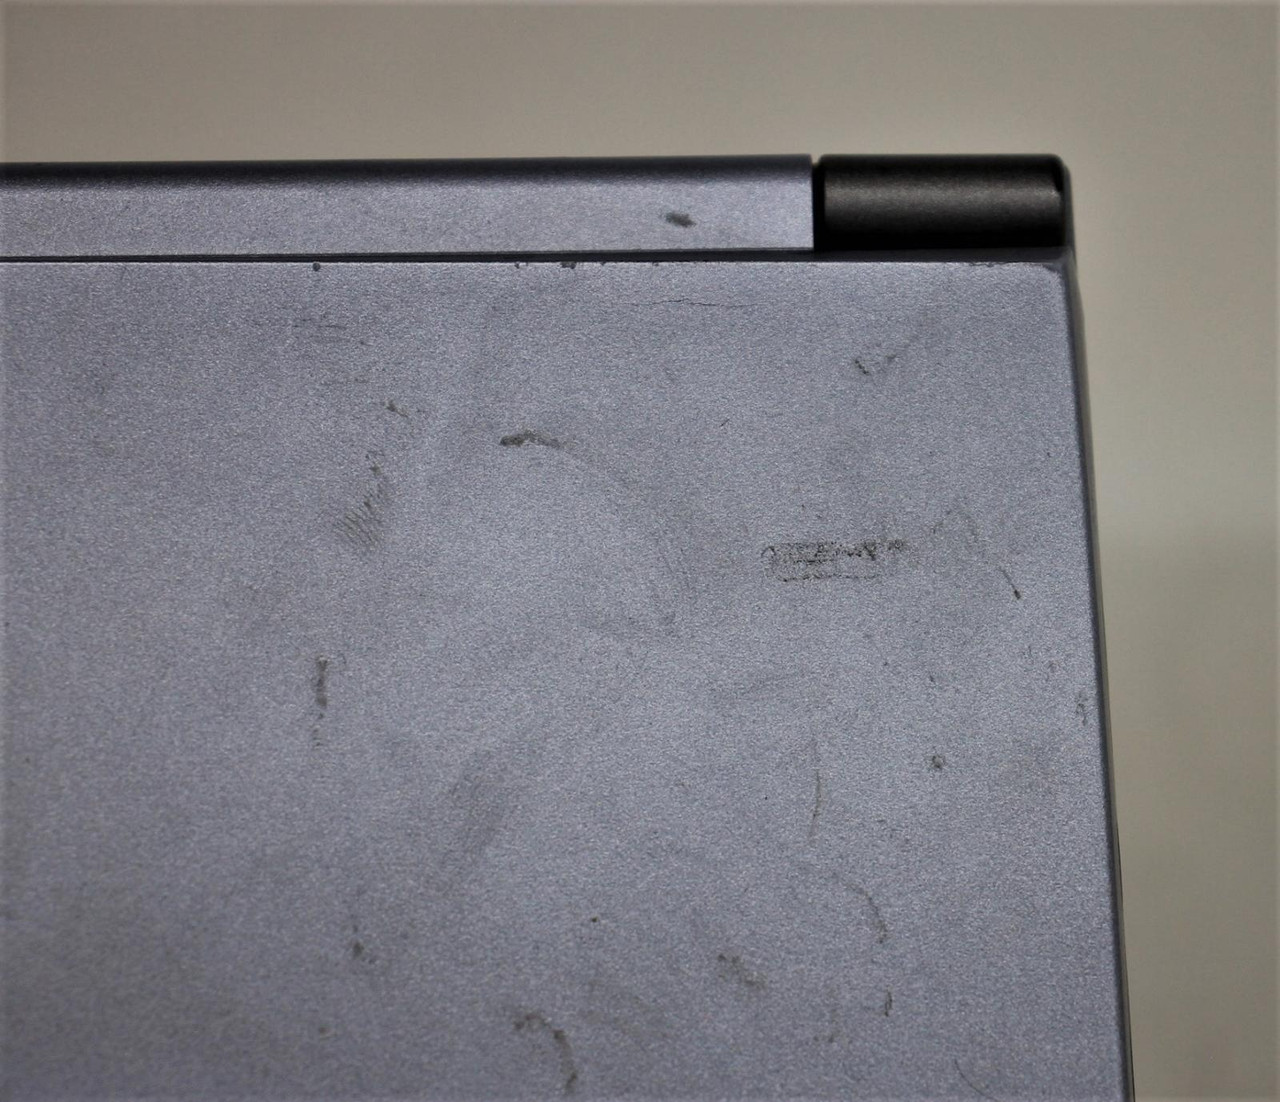 """ASUS Silver L8400 Ultinote 8400-850F 14.1"""" Pentium III Mobile Laptop FAULTY"""